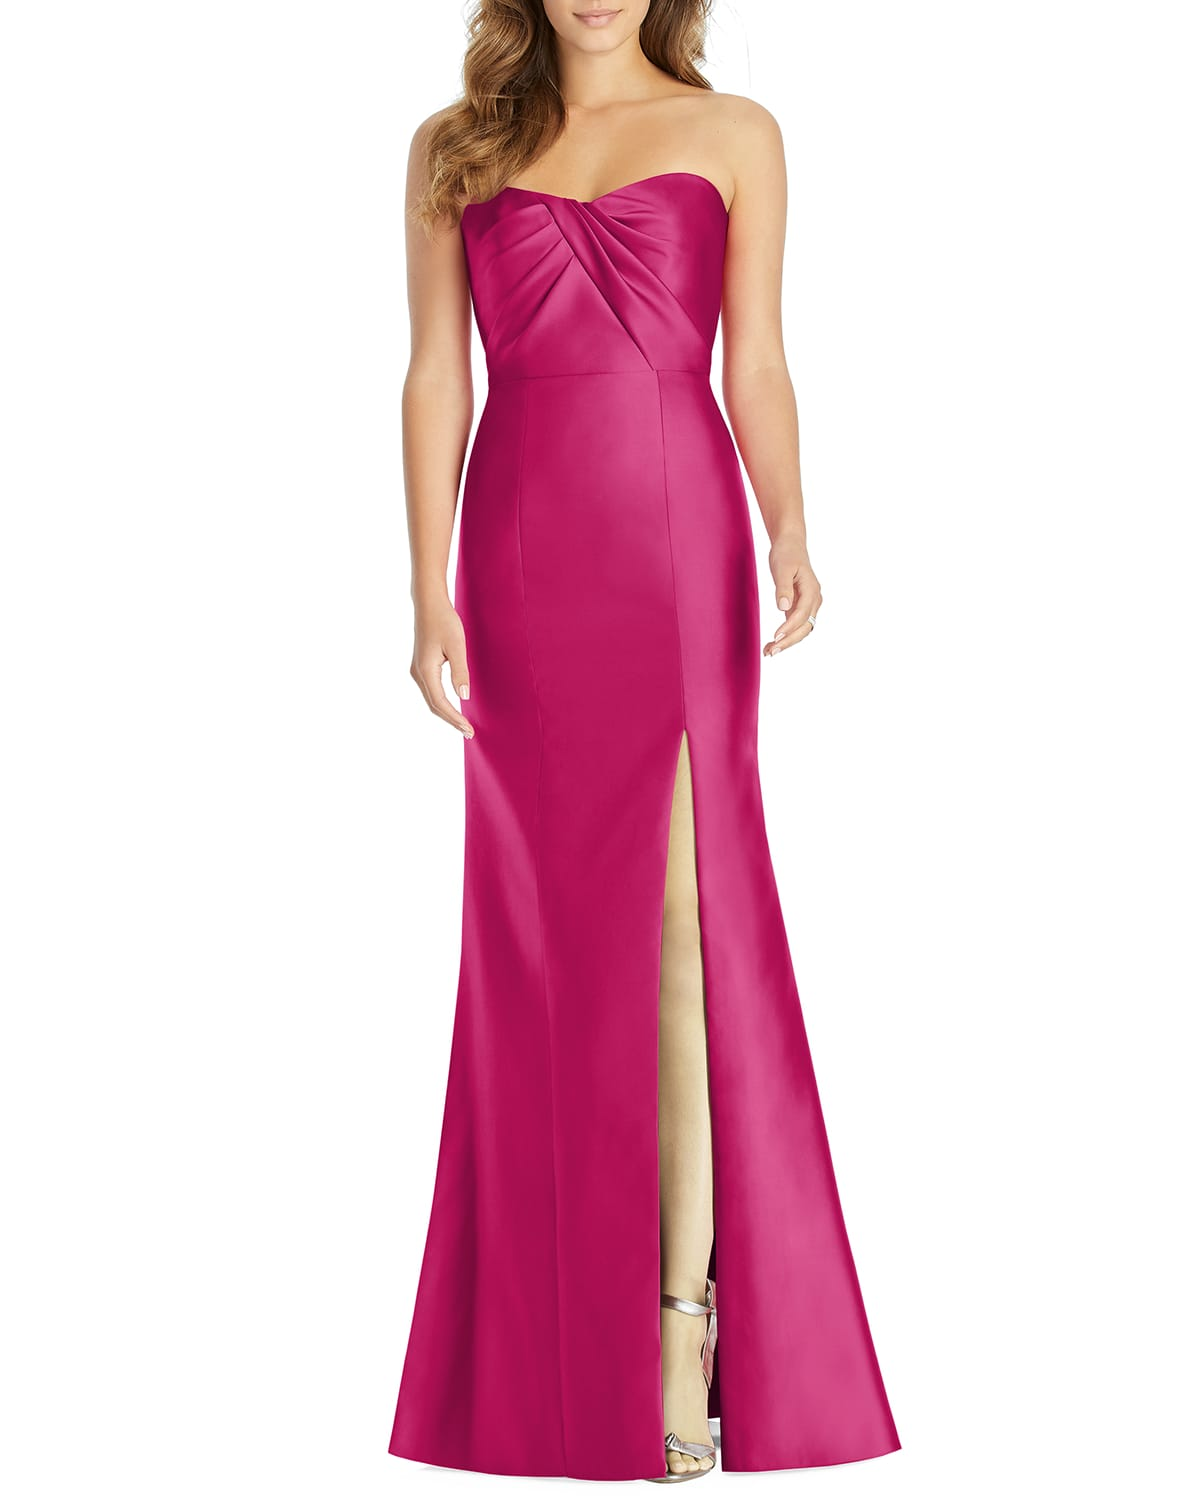 Strapless Sweetheart Draped-Bodice Gown w/ Thigh-Slit